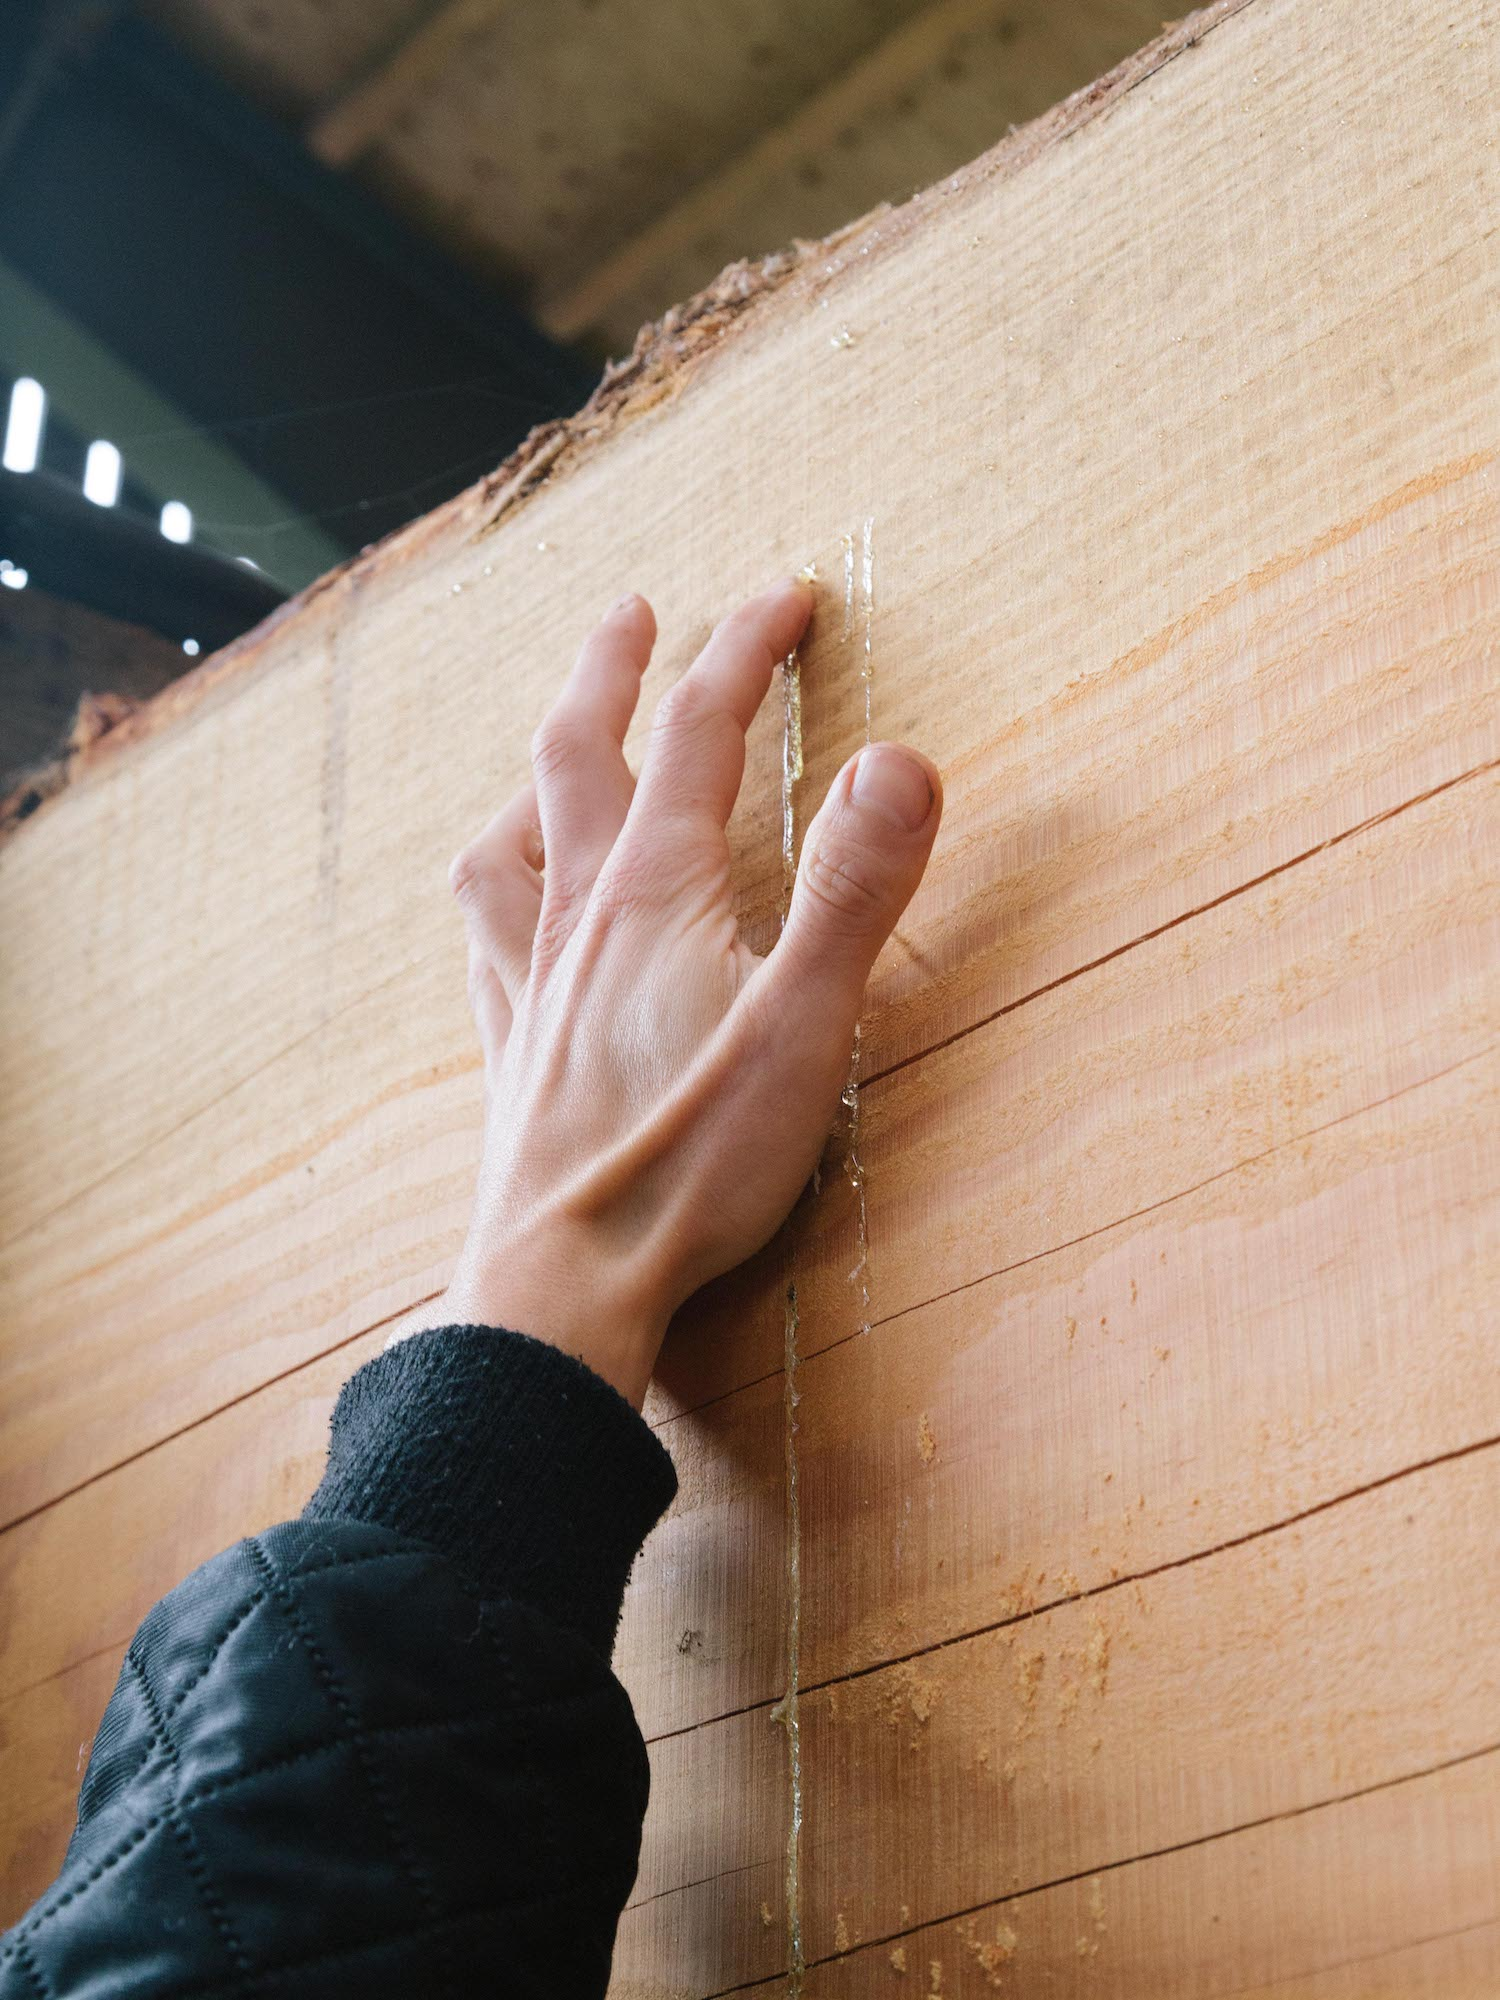 Design Studies member touching wood, photo by Ekstra